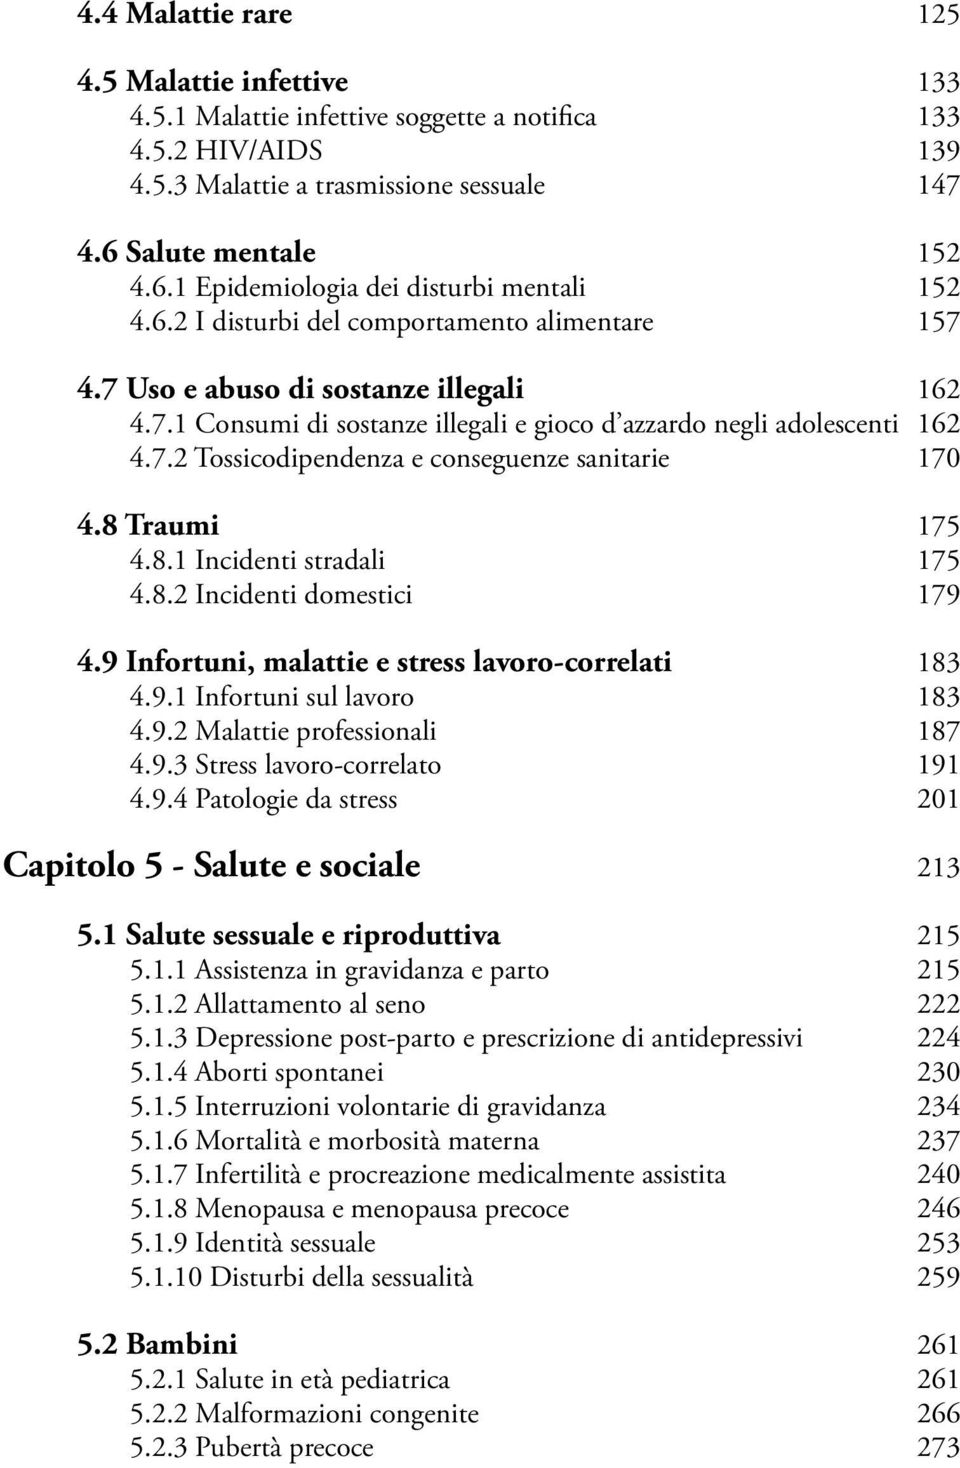 7.2 Tossicodipendenza e conseguenze sanitarie 170 4.8 Traumi 175 4.8.1 Incidenti stradali 175 4.8.2 Incidenti domestici 179 4.9 Infortuni, malattie e stress lavoro-correlati 183 4.9.1 Infortuni sul lavoro 183 4.